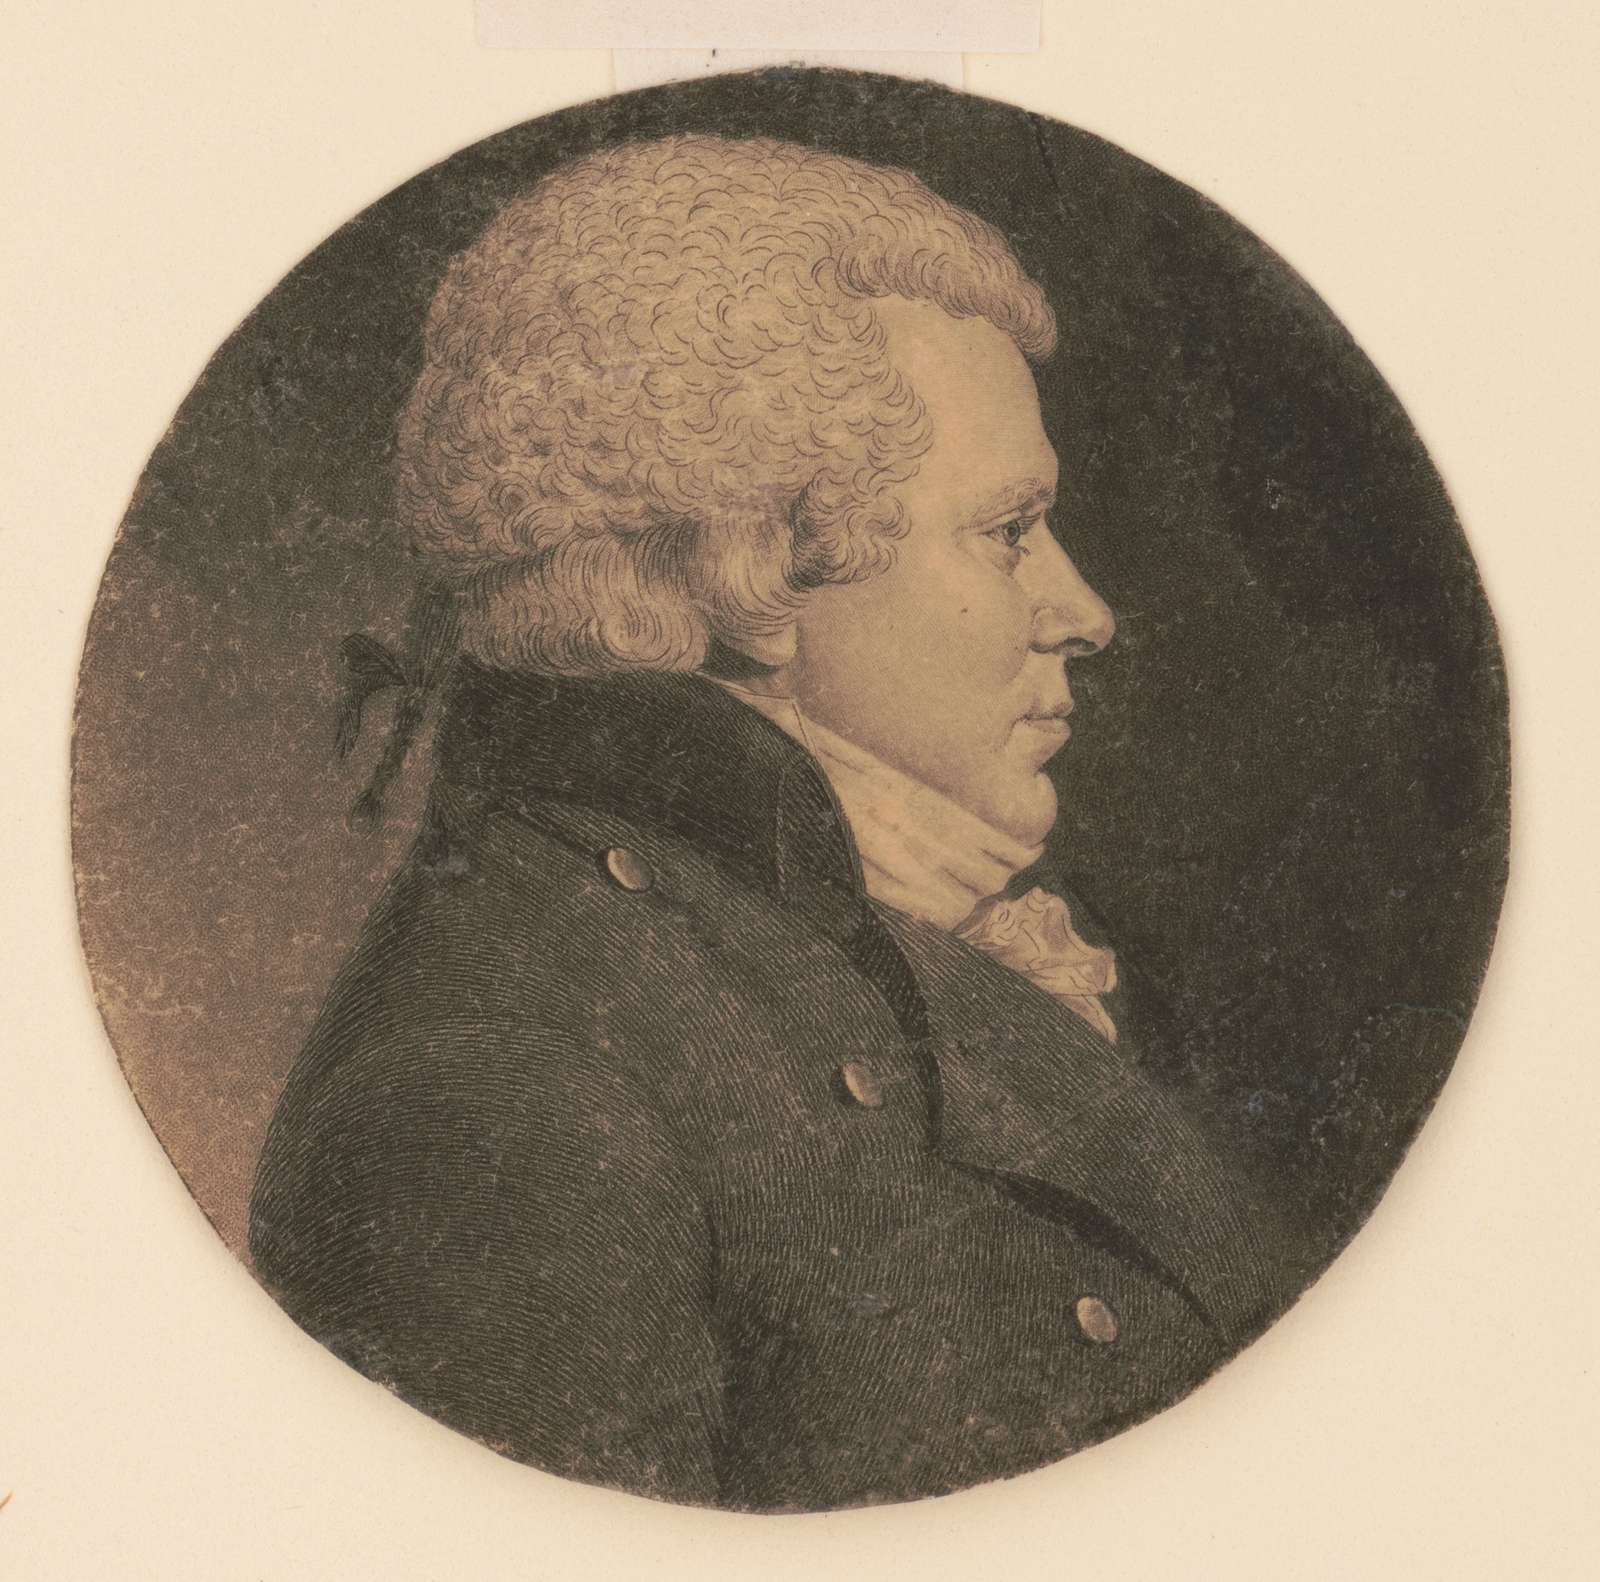 Identified as William Hudson, head-and-shoulders portrait, right profile